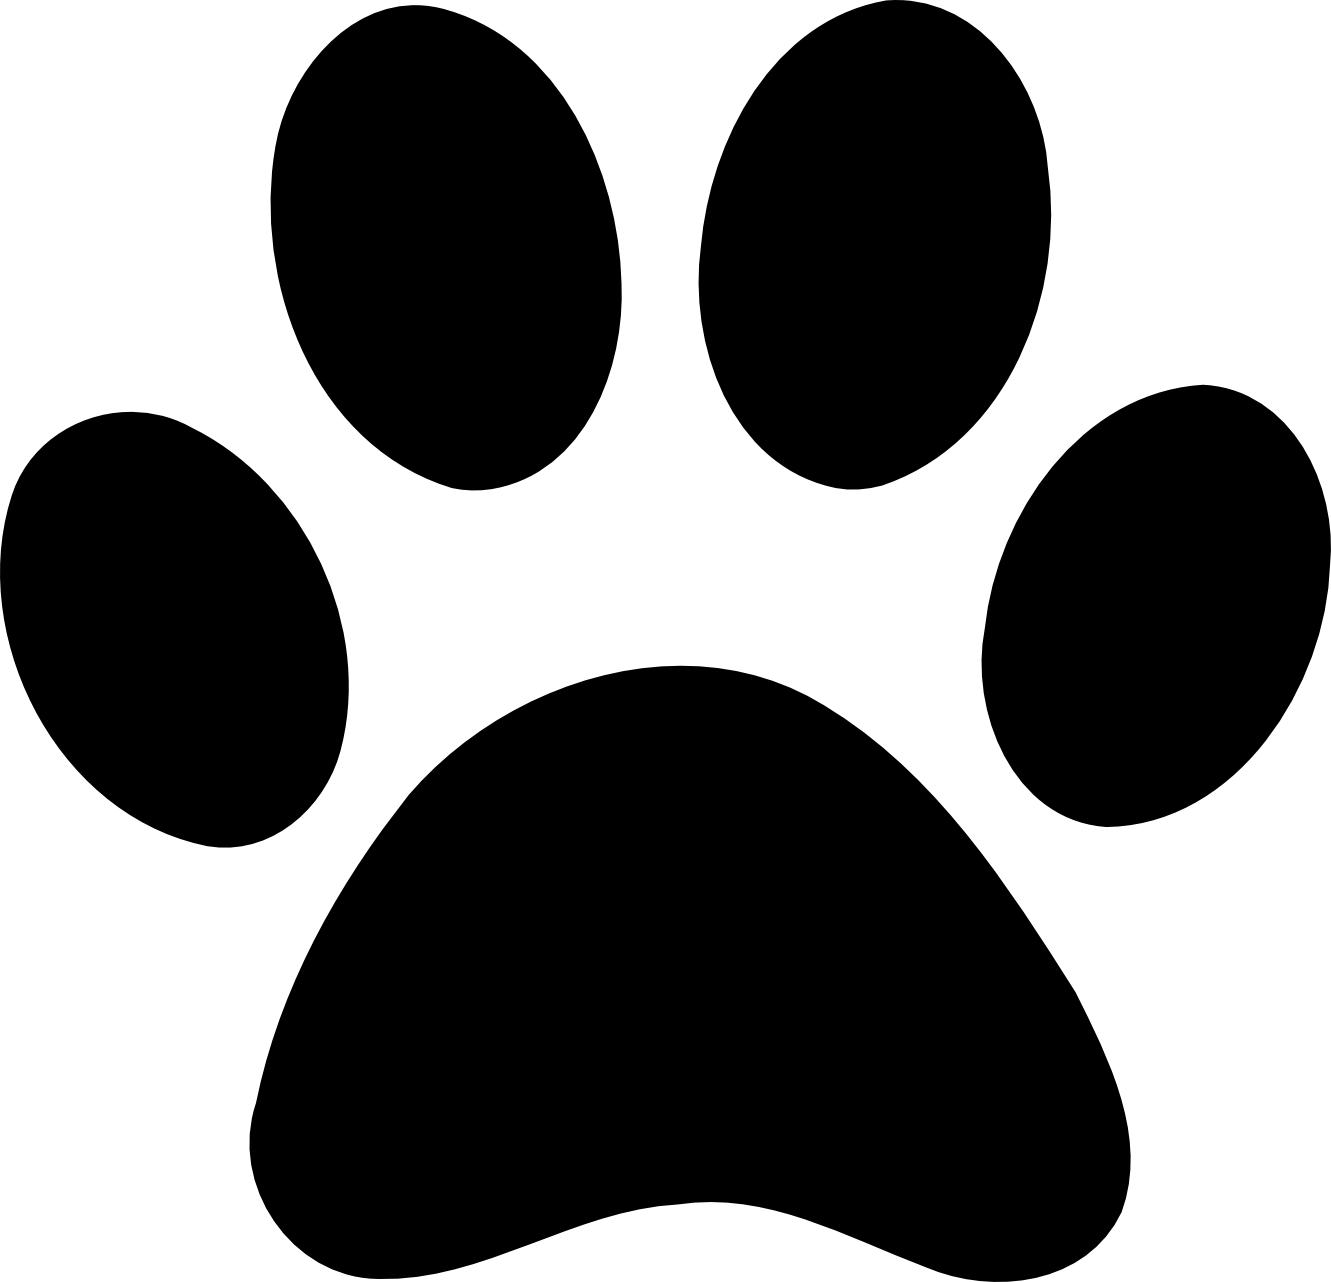 Paw clip art stencil. Dog bone graphic black